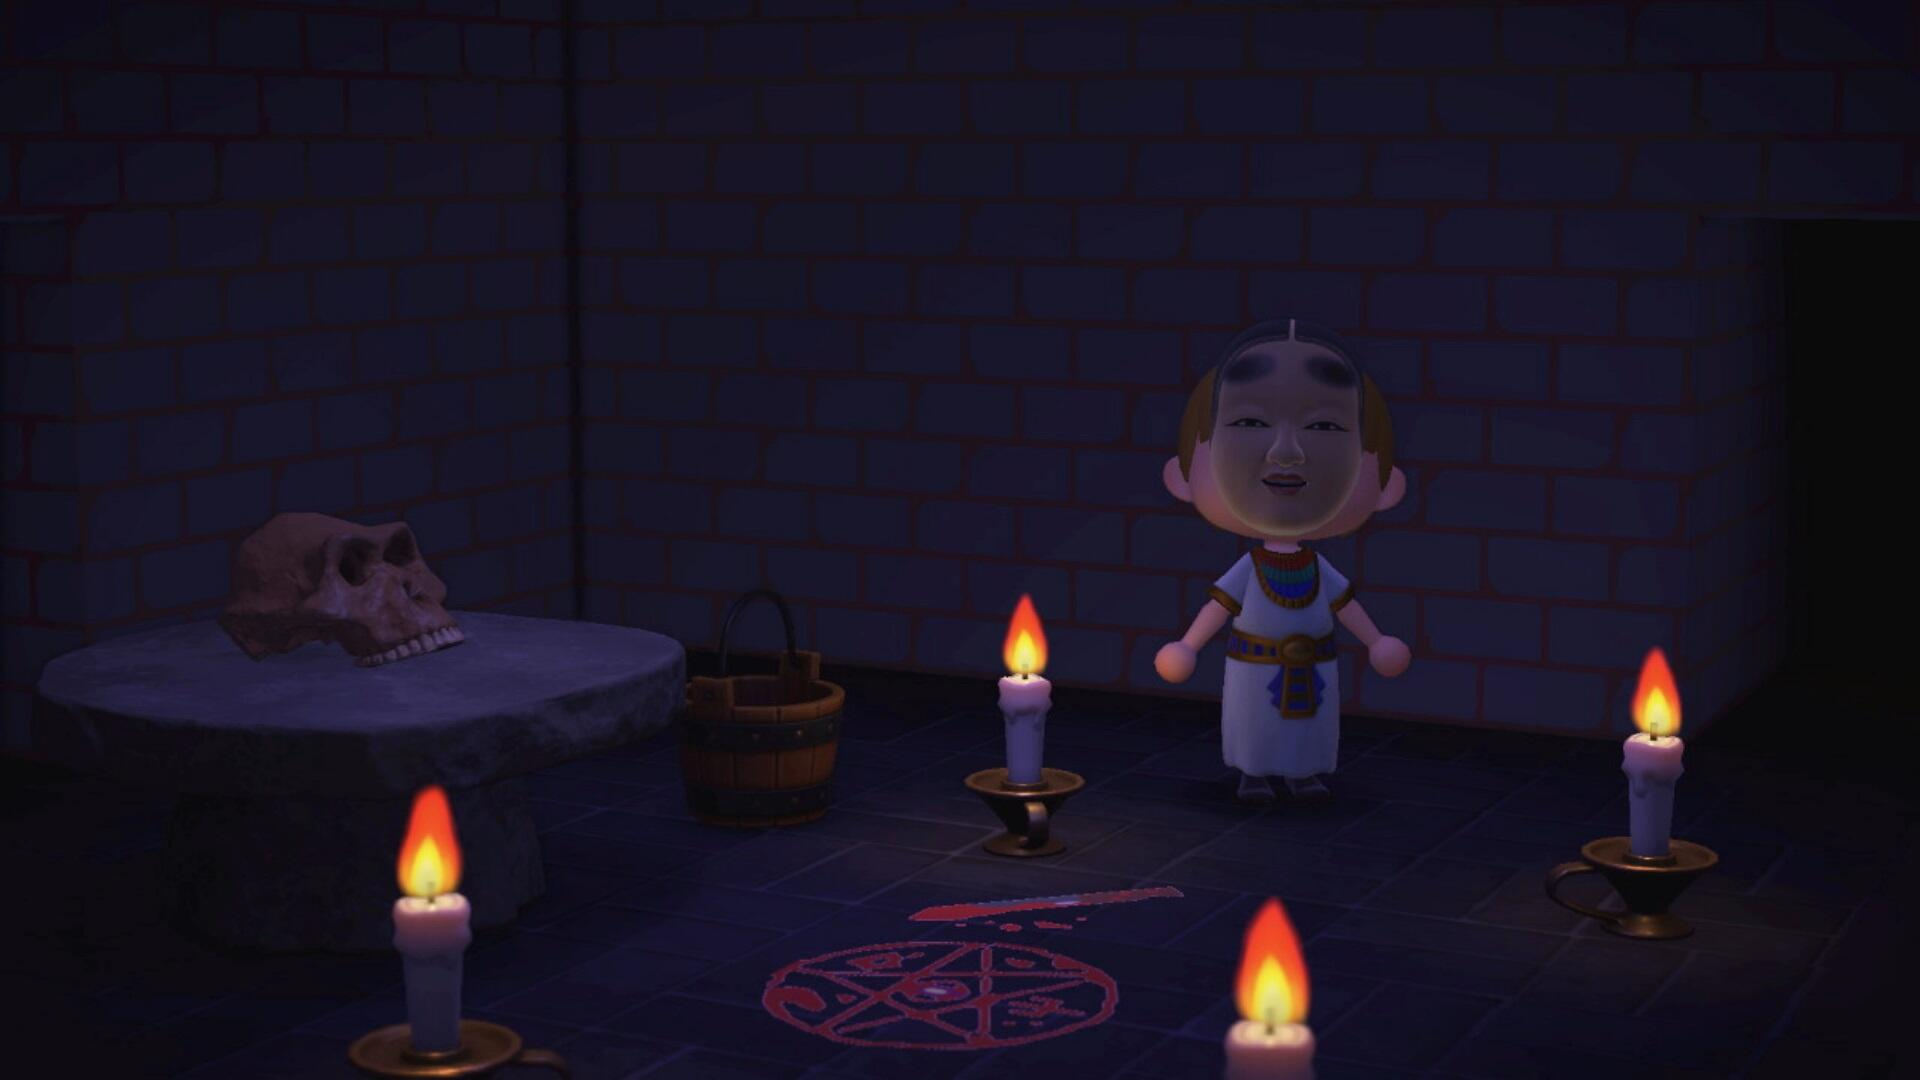 the appeal of evil in animal crossing new horizons